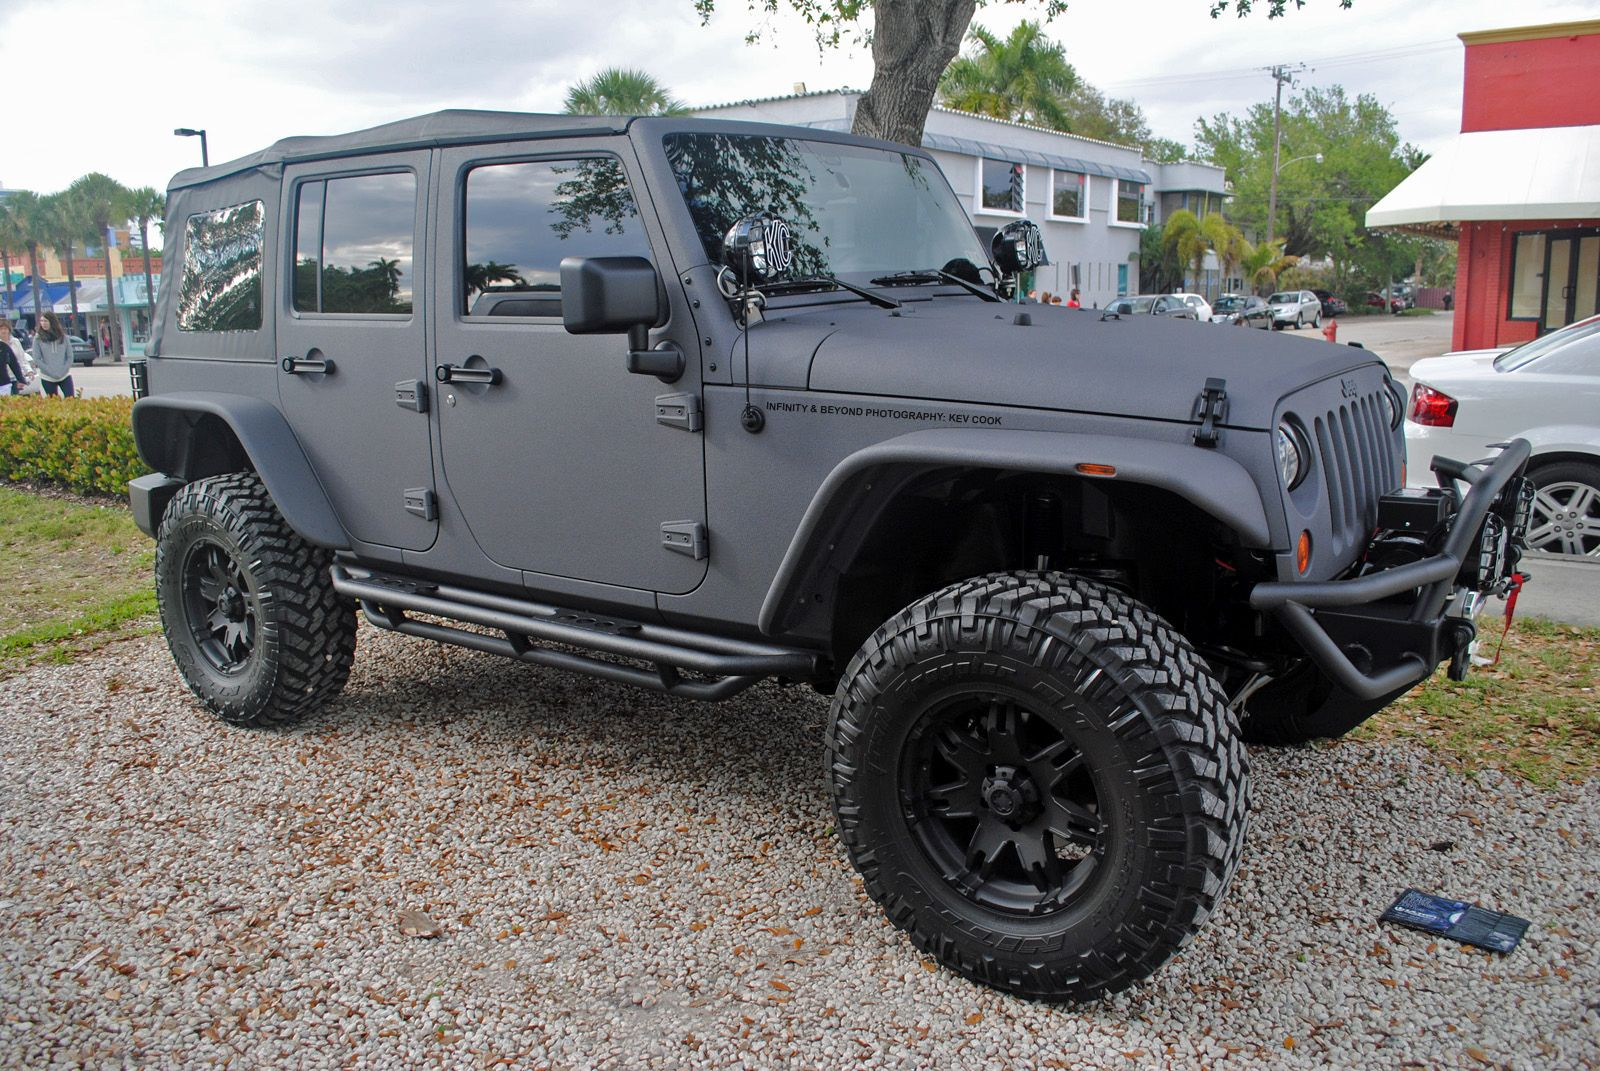 Matte Grey Vinyl Wrapped Jeep Wrangler Jeep Wrangler Jeep